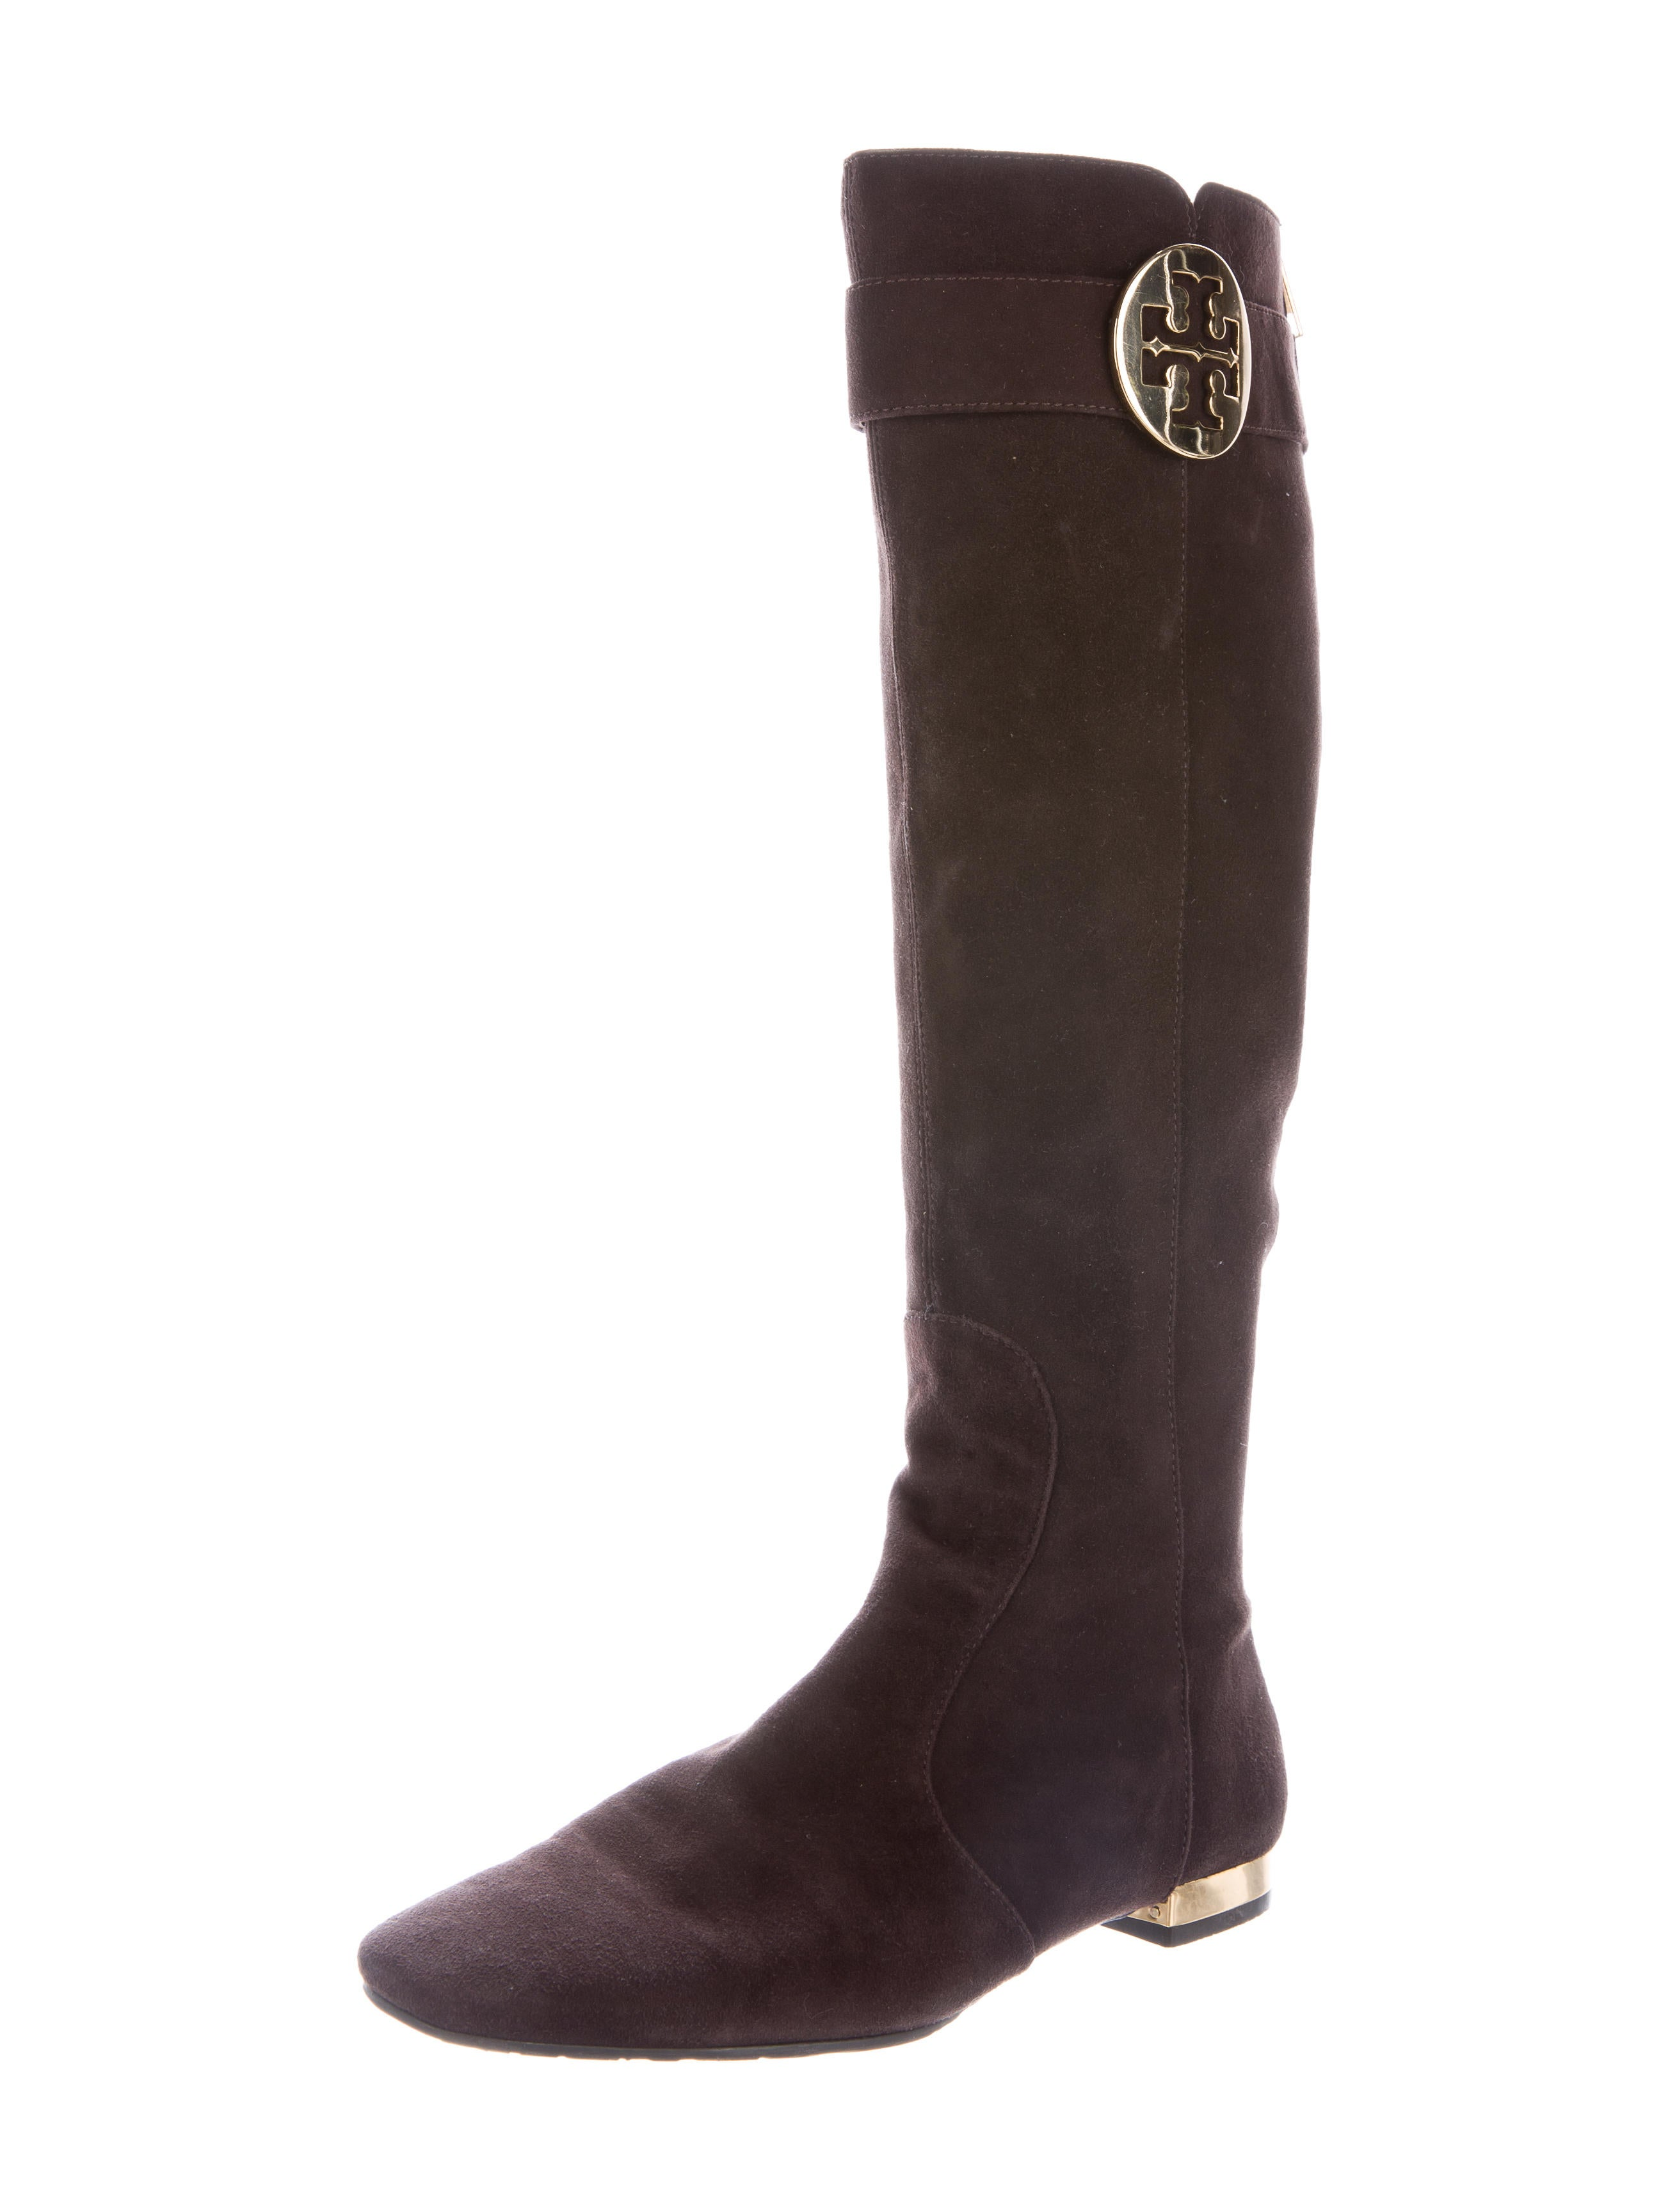 burch uma suede boots shoes wto75473 the realreal